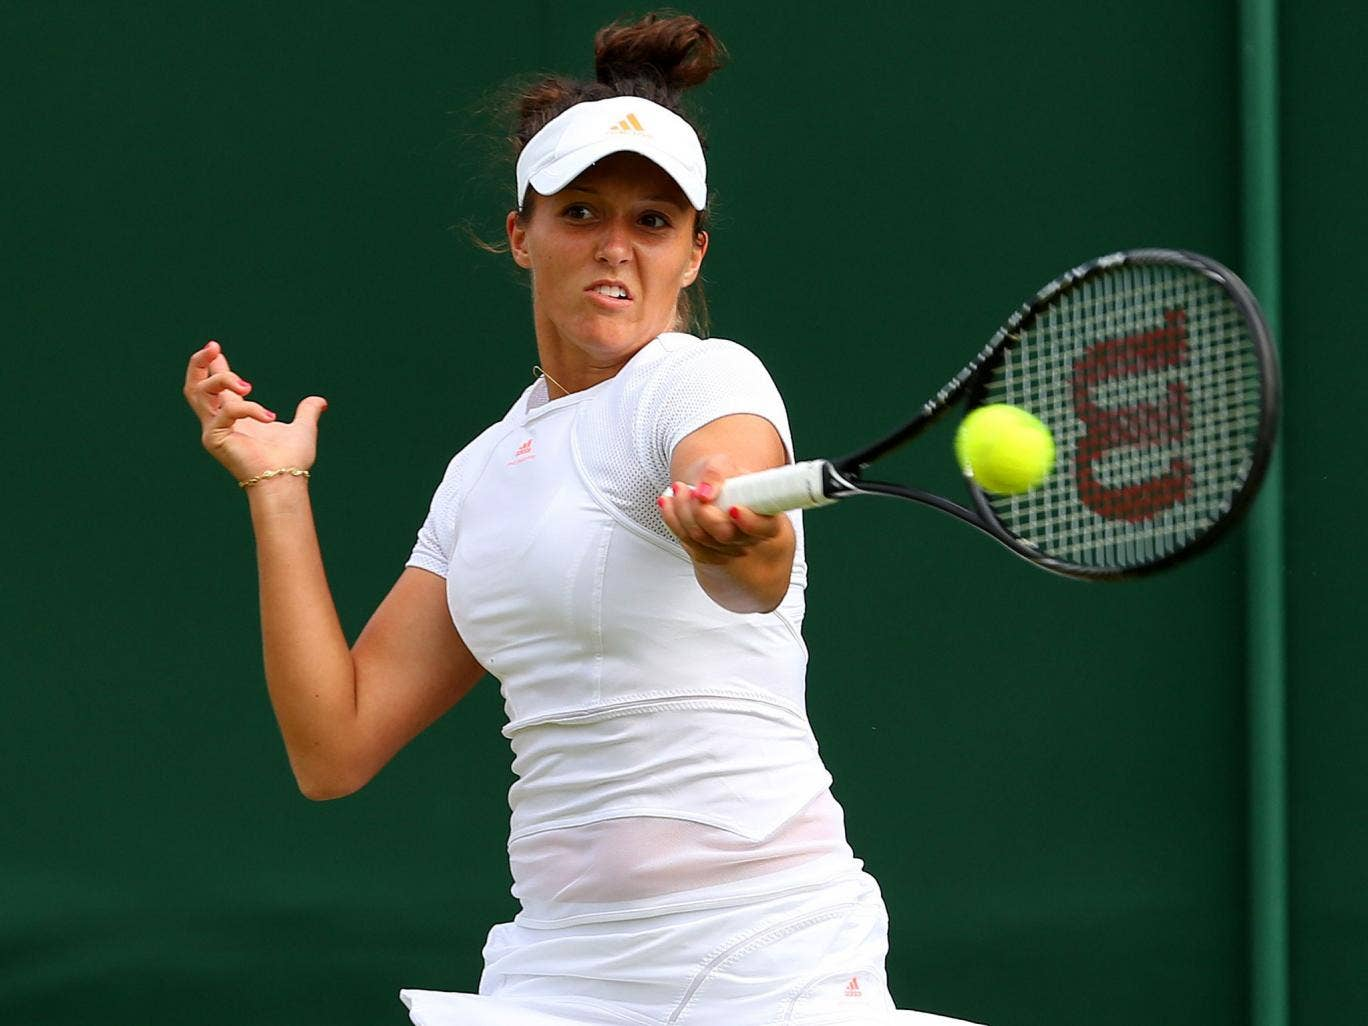 Laura Robson will be seeded at a Grand Slam tournament for the first time